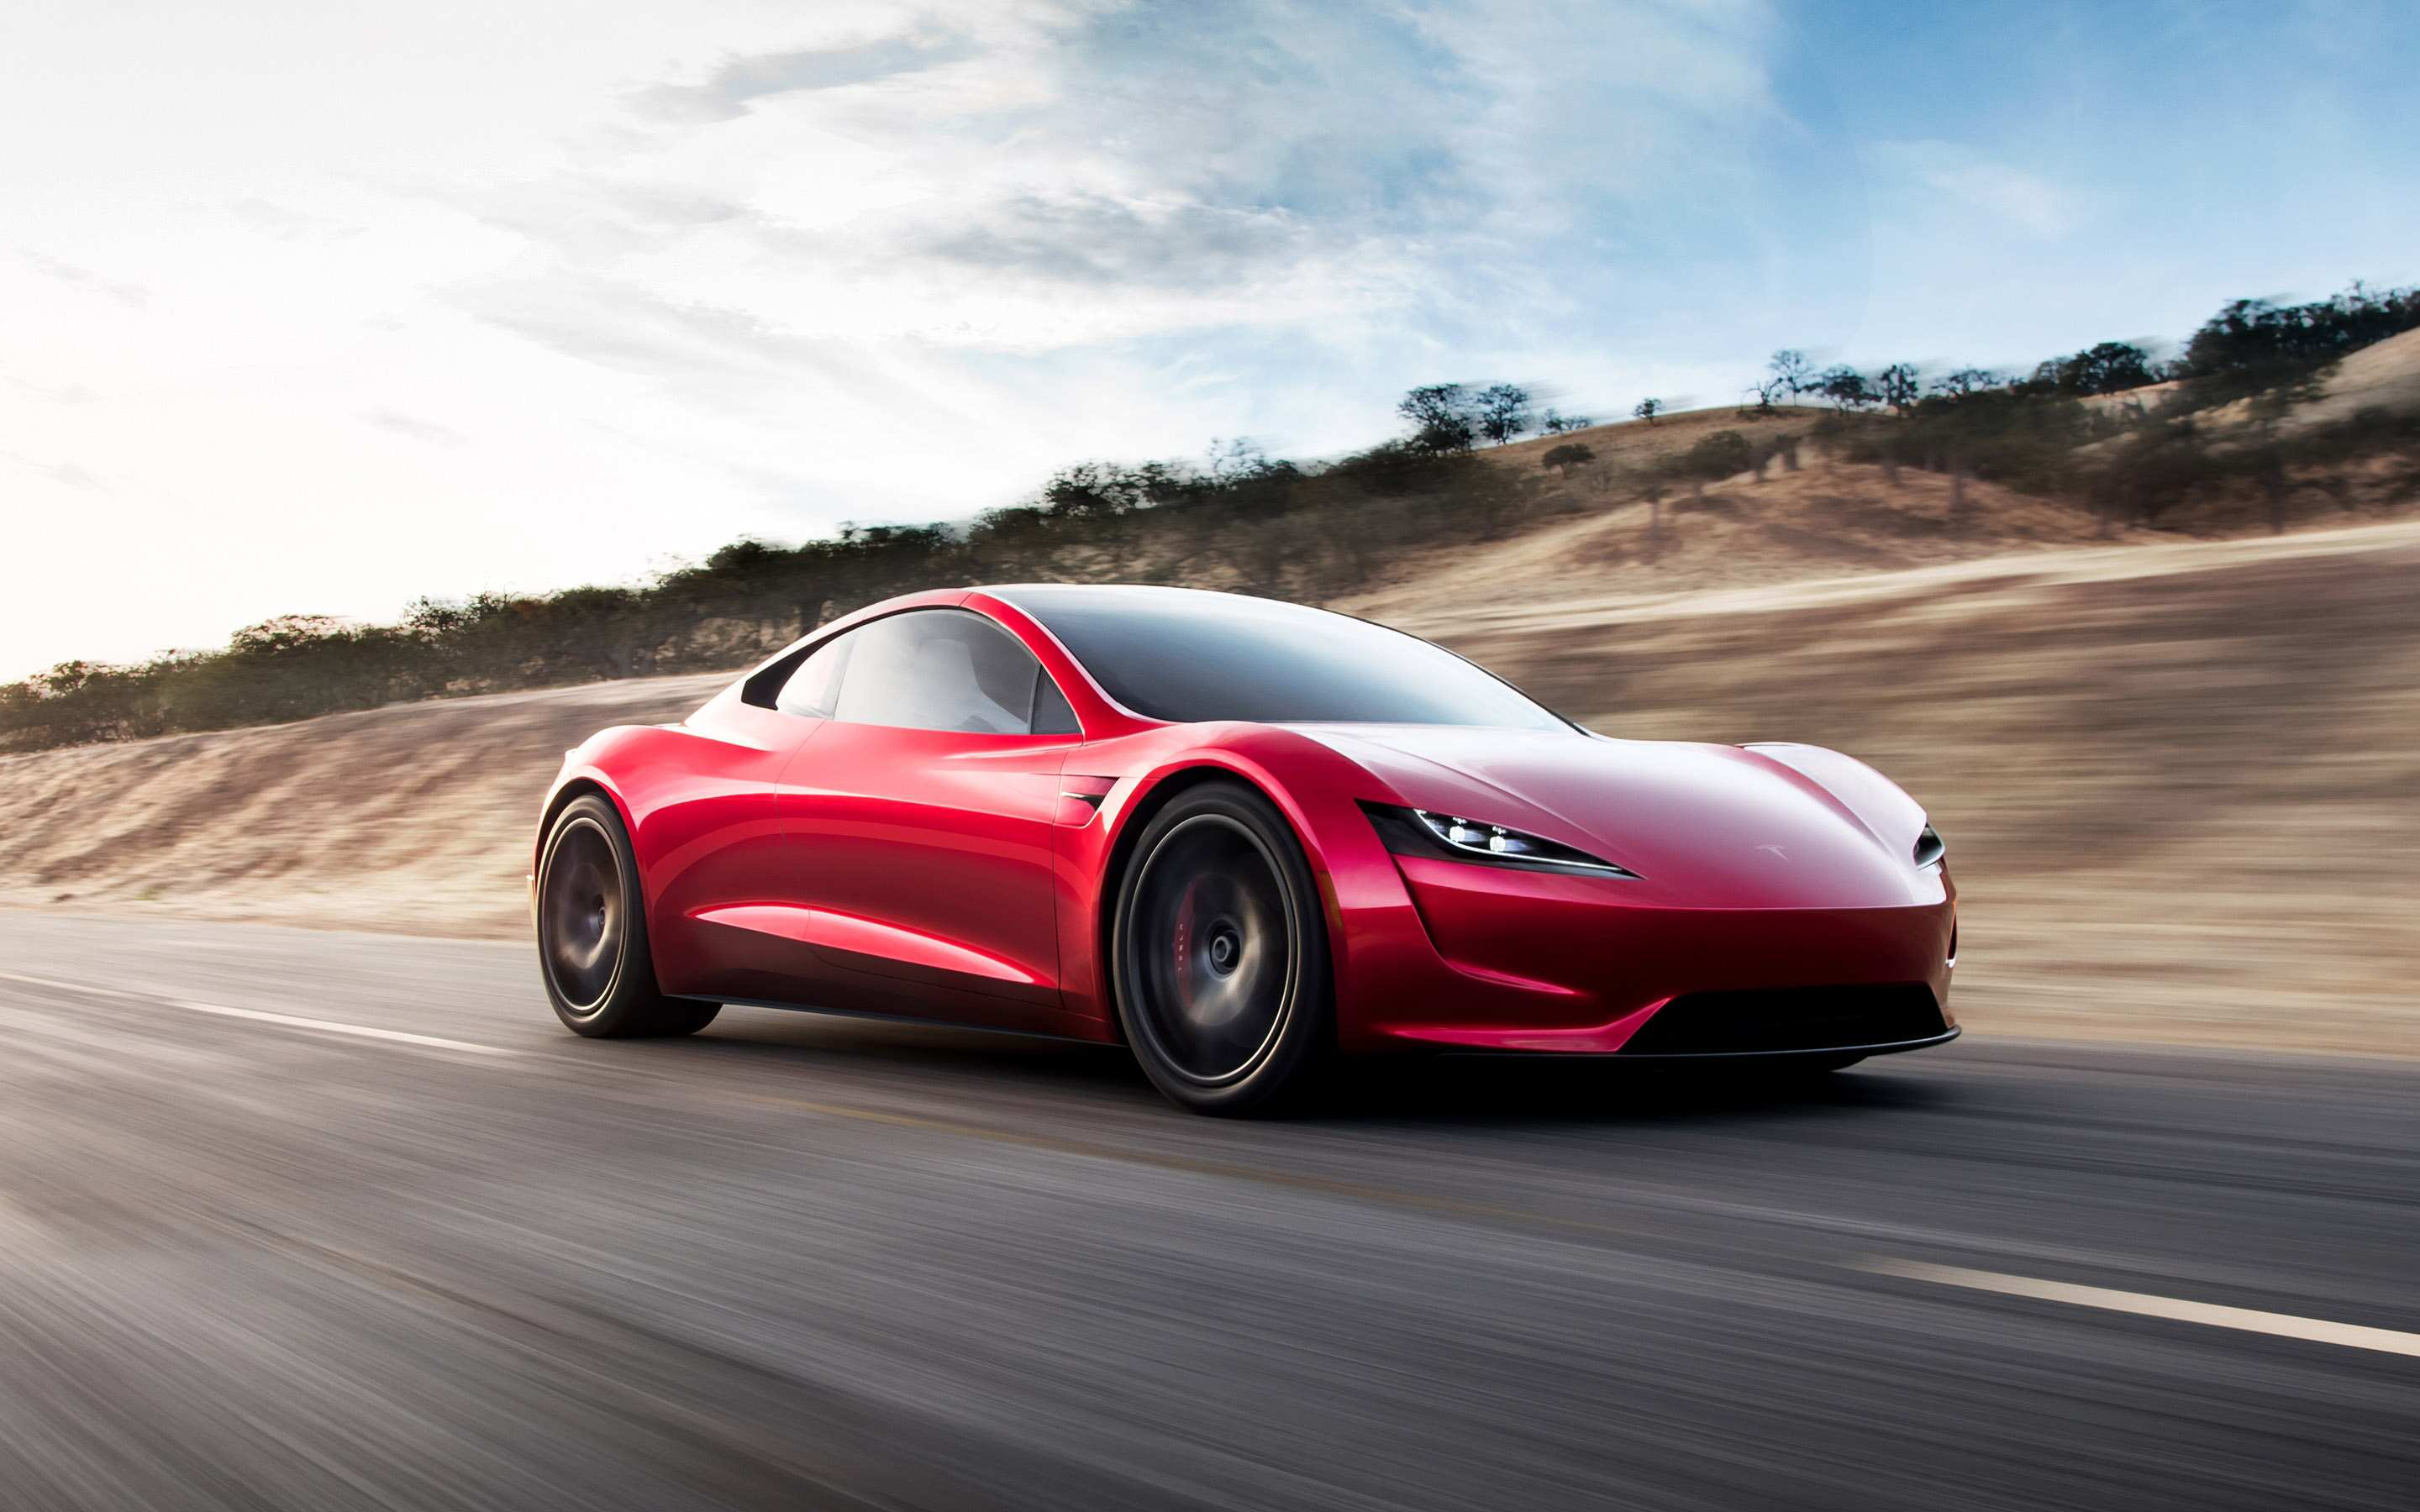 13 New 2020 Tesla Roadster 0 60 Spy Shoot with 2020 Tesla Roadster 0 60